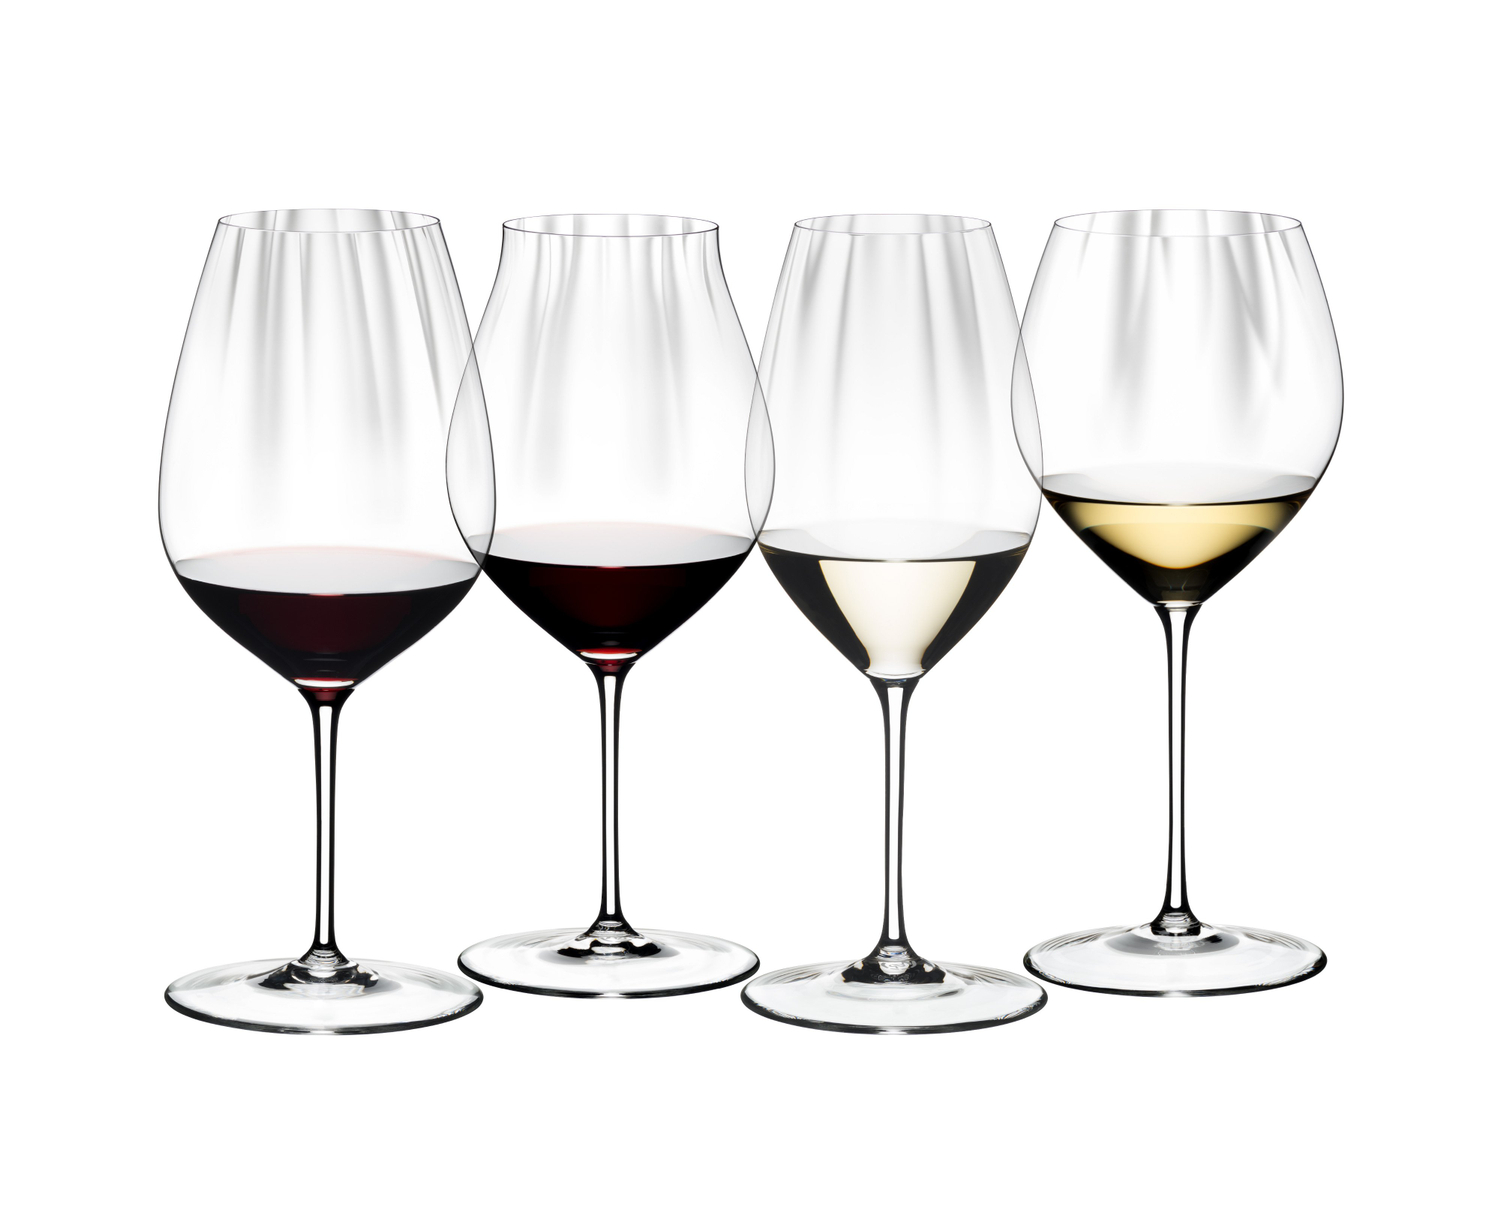 wine glasses. gifts for the wine lover, enthusiasts